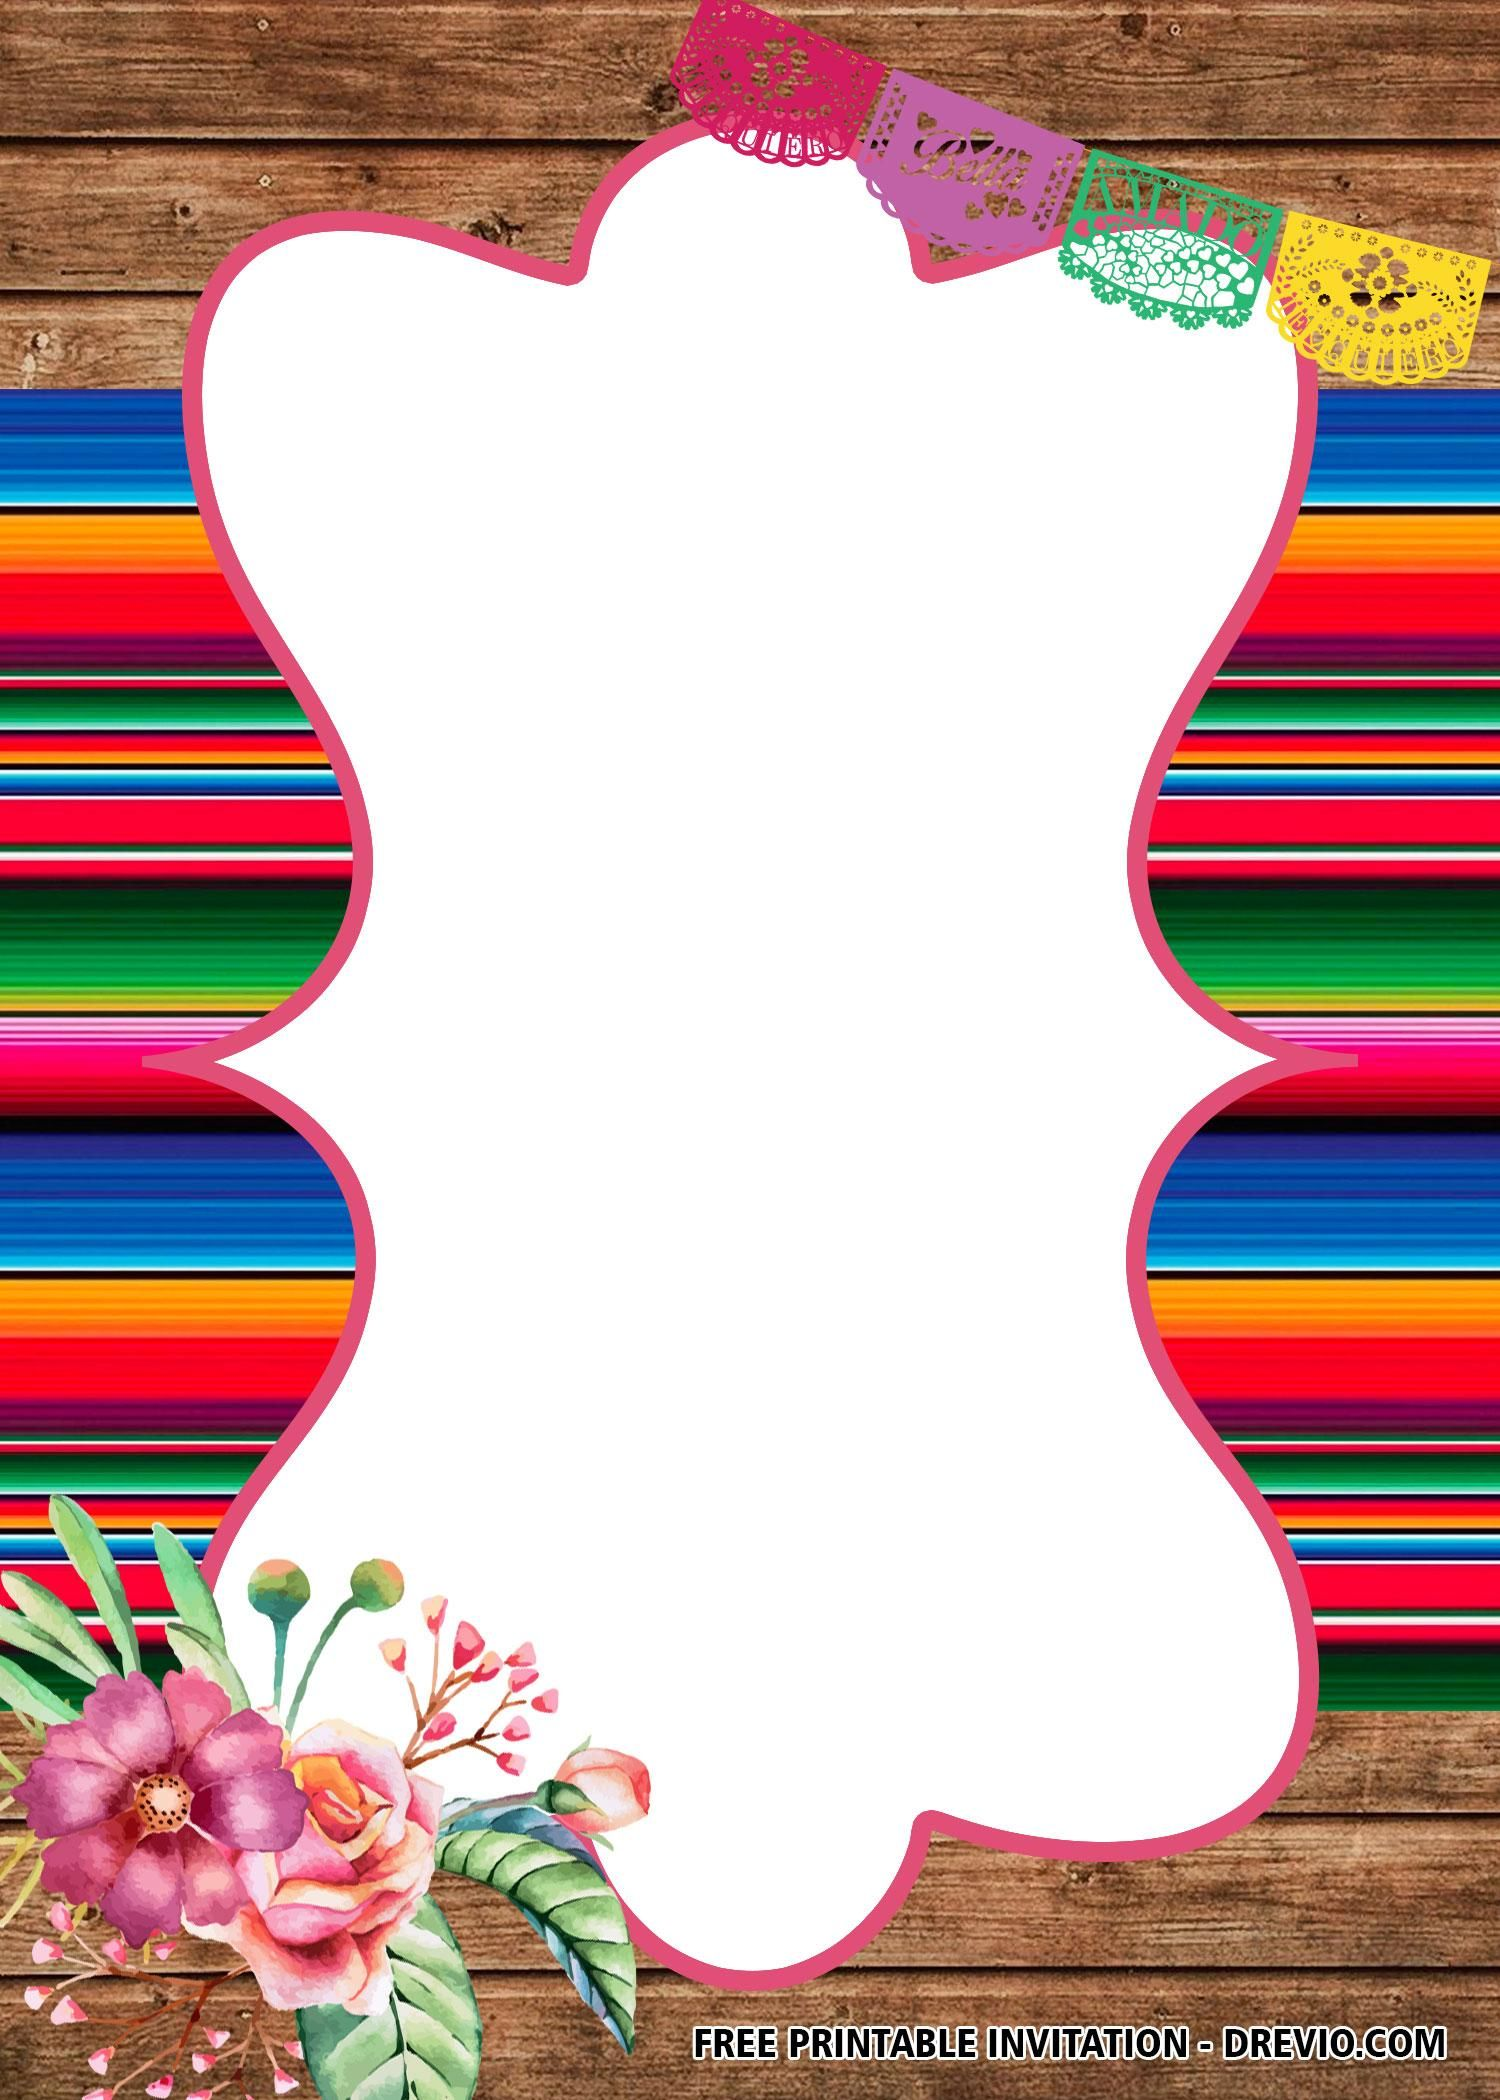 10 Mexican Invitation Template In 2020 Free Printable Birthday Invitations Mexican Invitations Fiesta Baby Shower Invitations